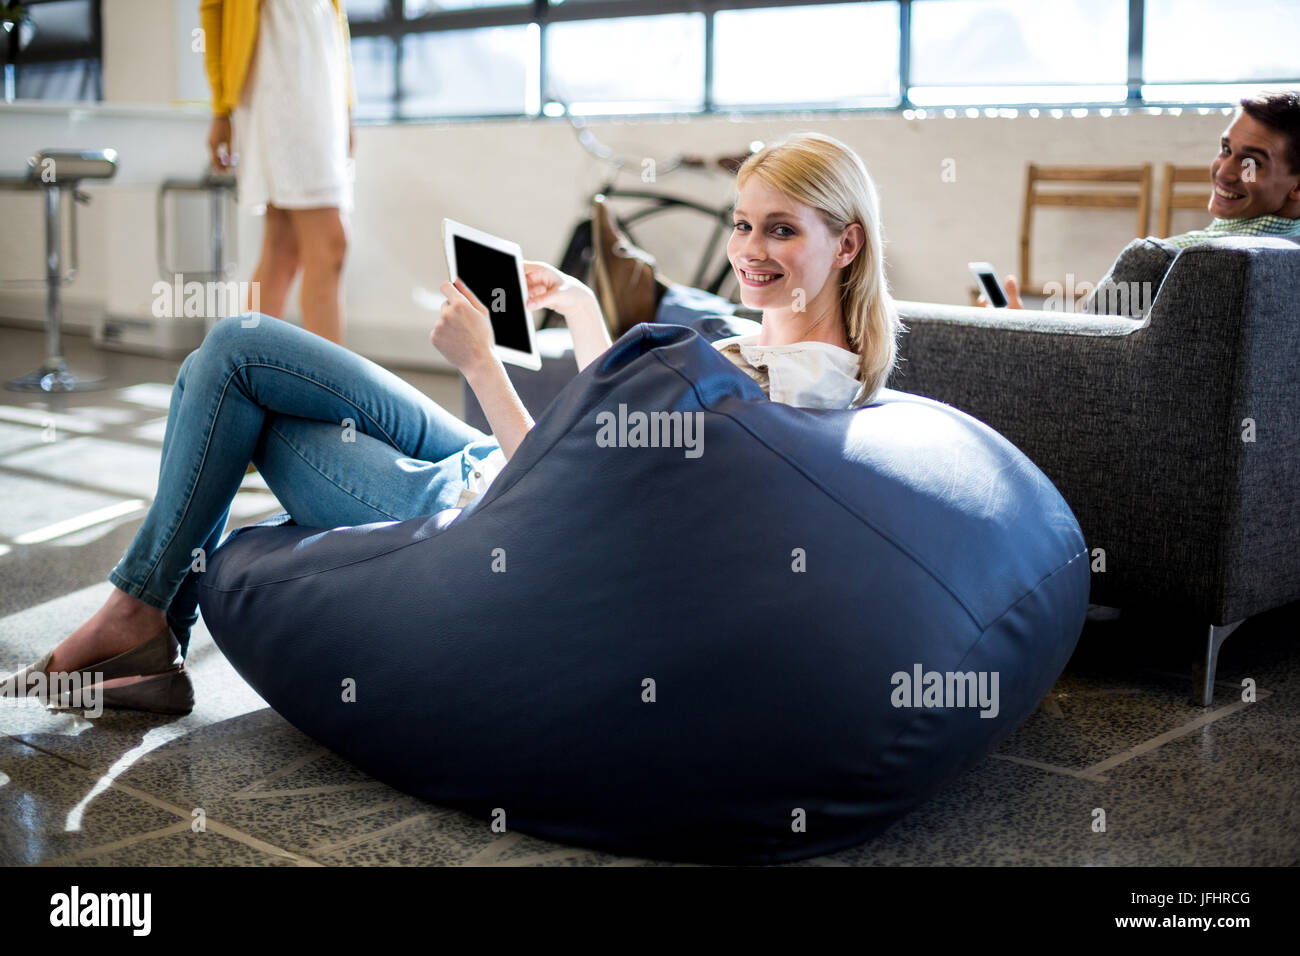 Young woman sitting on a bean bag holding digital tablet - Stock Image